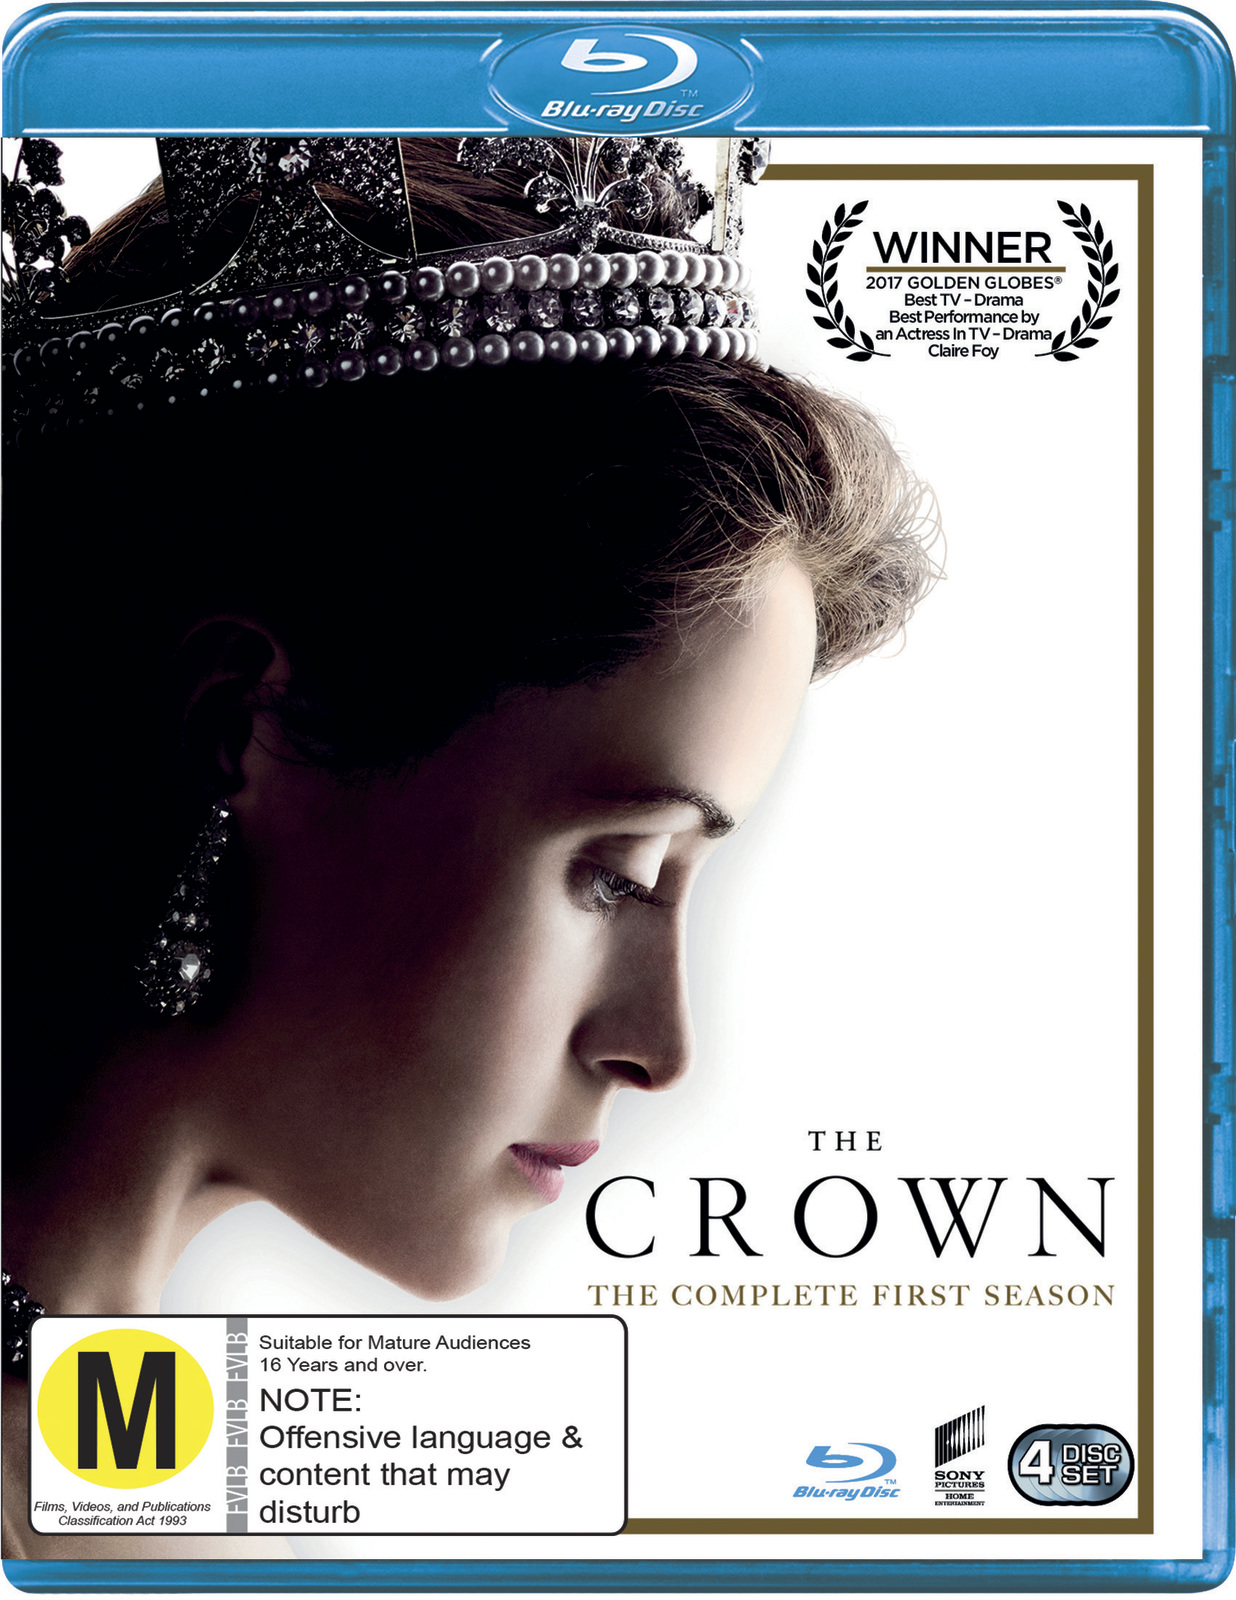 The Crown: Season 1 on Blu-ray image